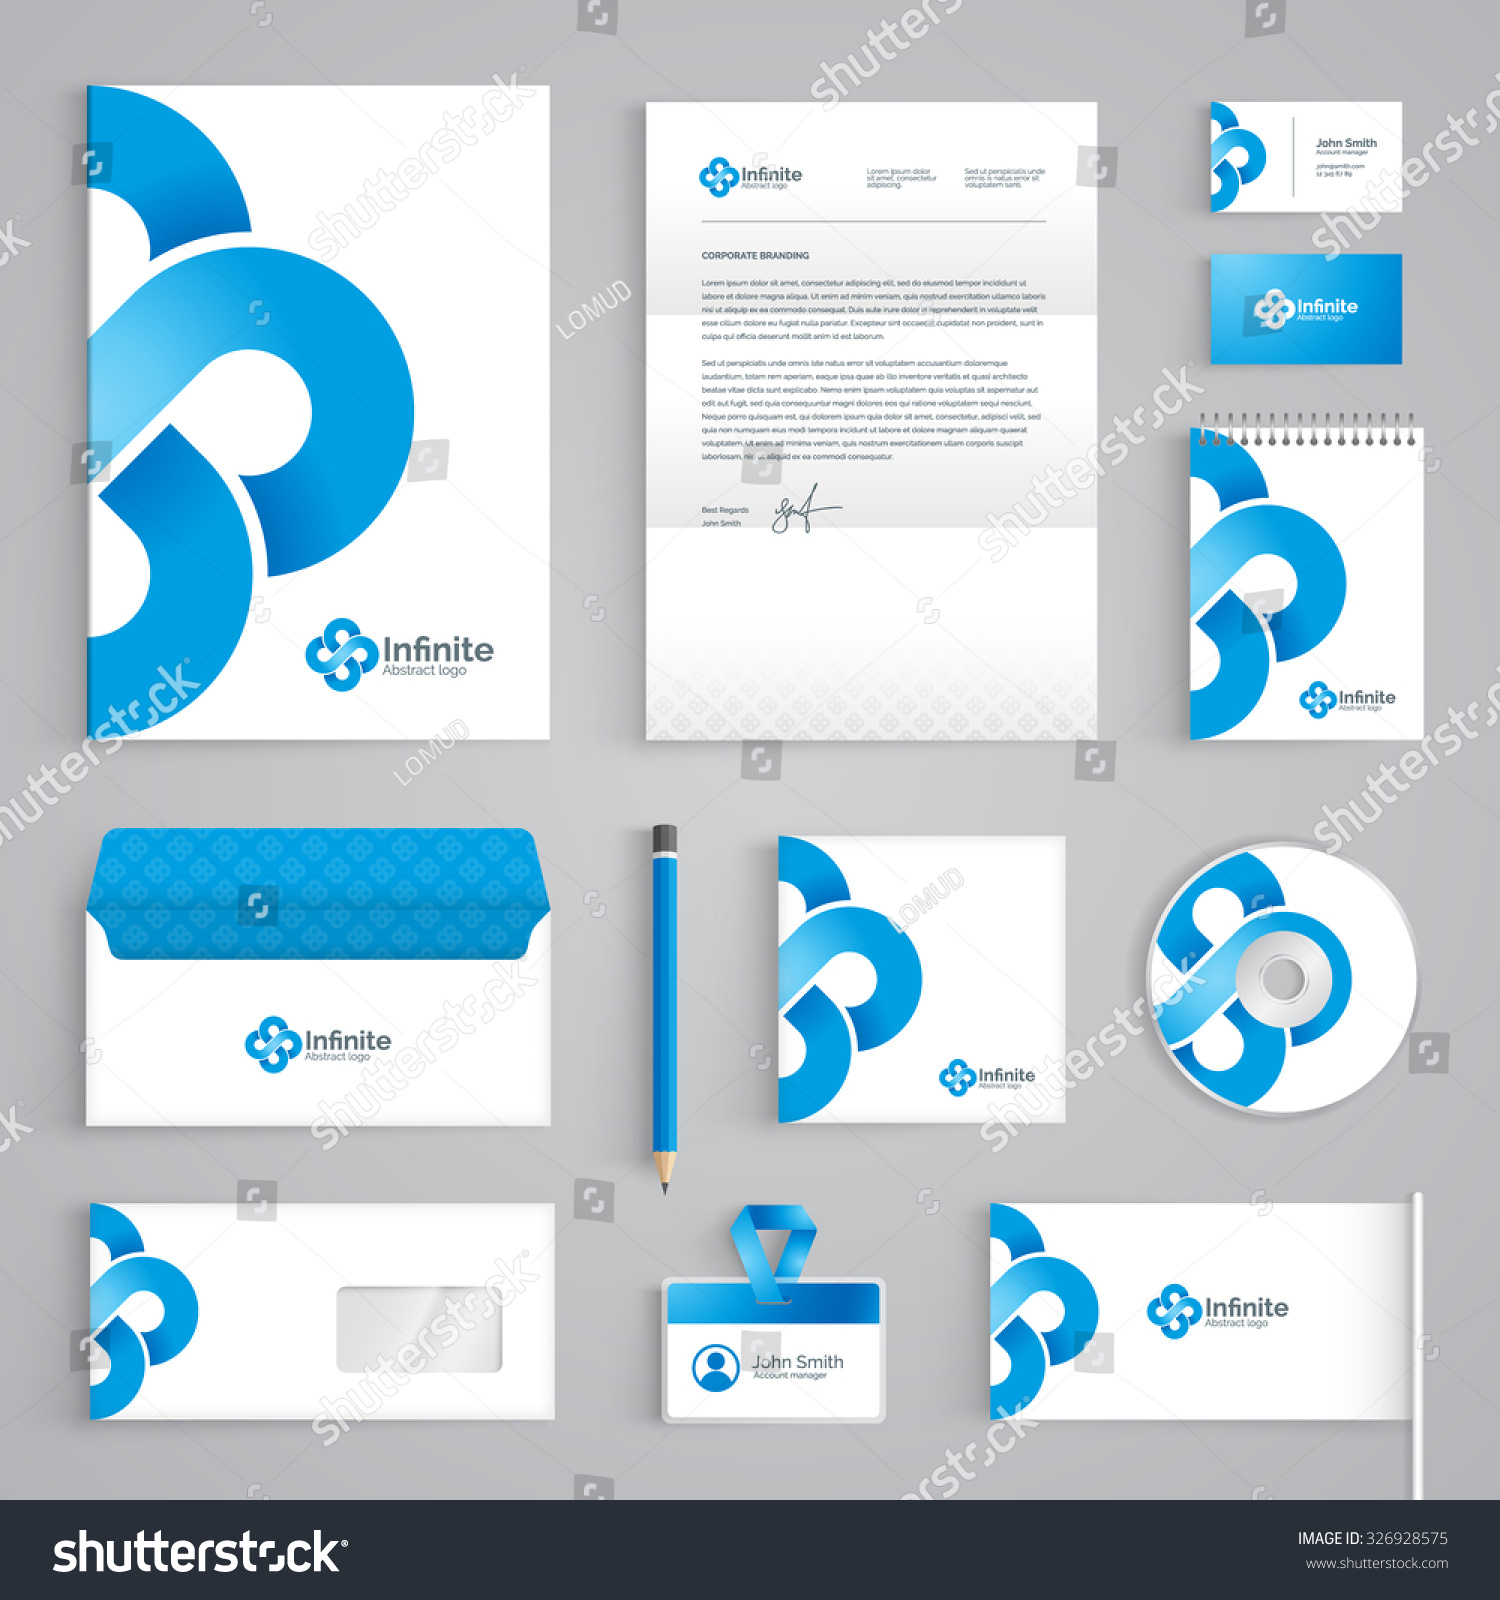 Corporate Identity Branding Template Abstract Vector Stock Photo